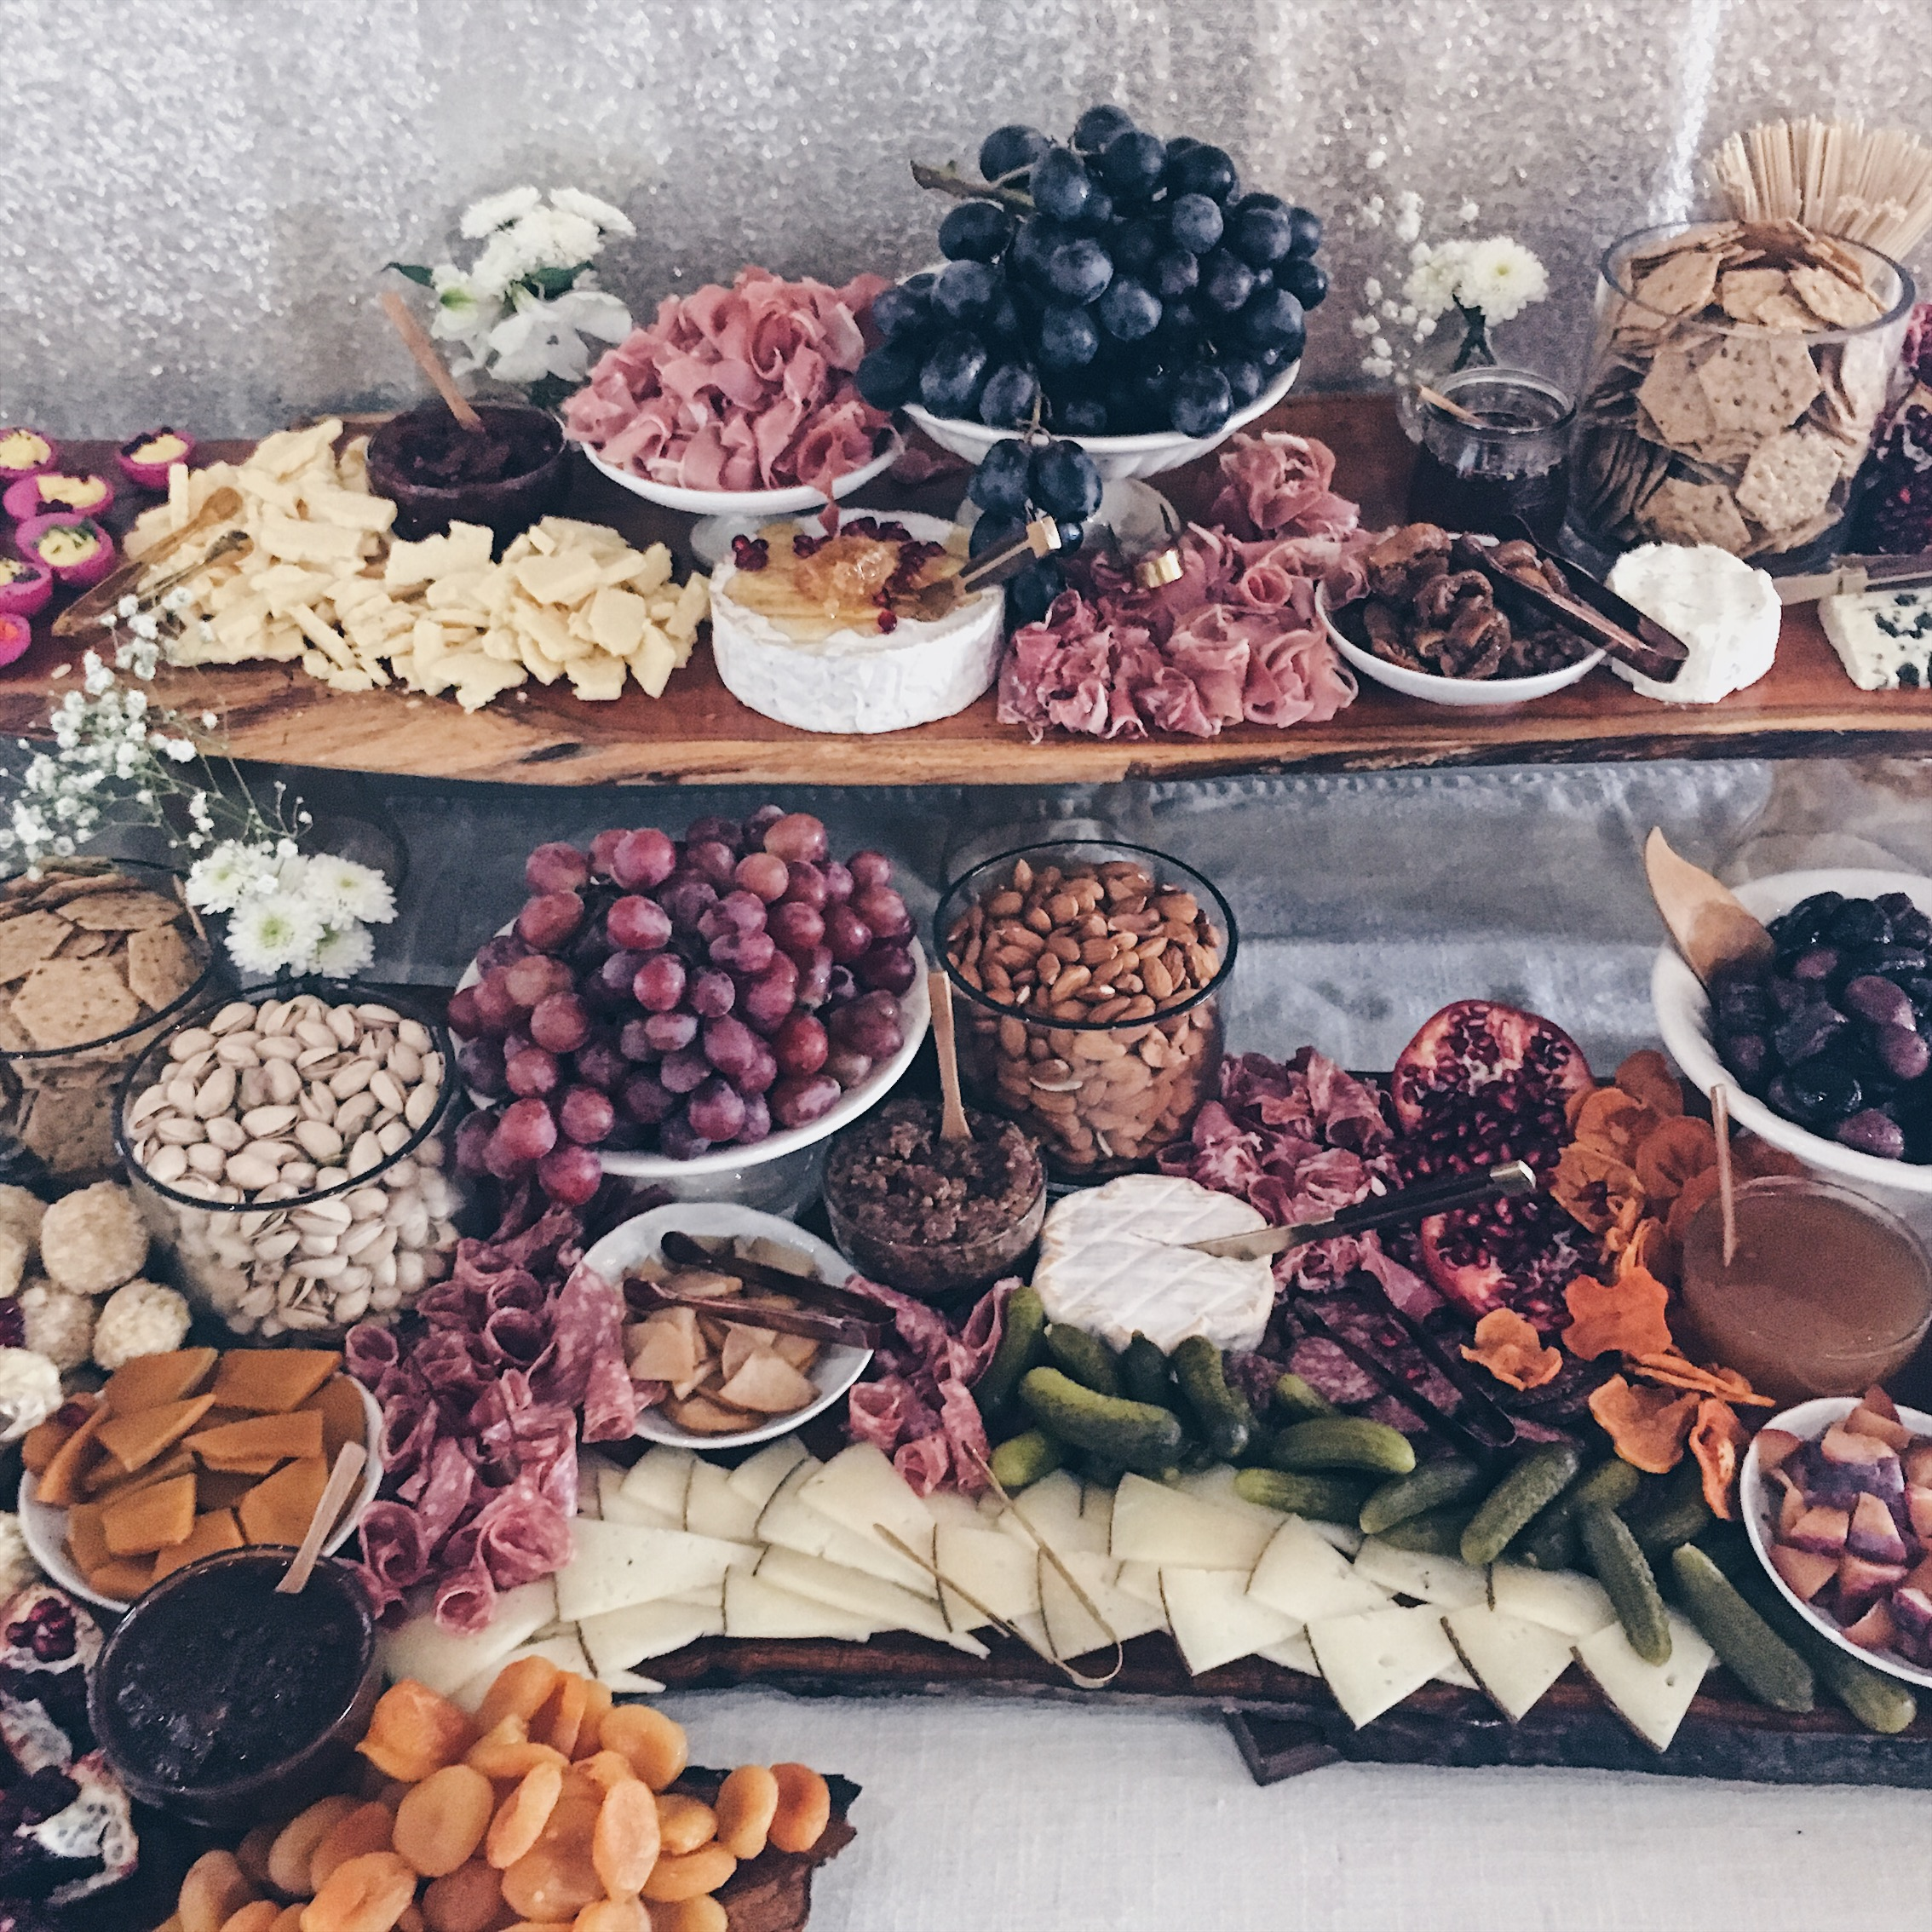 Hawaii Island Picnics and Provisions Grazing Table 2019 Wedding.jpg